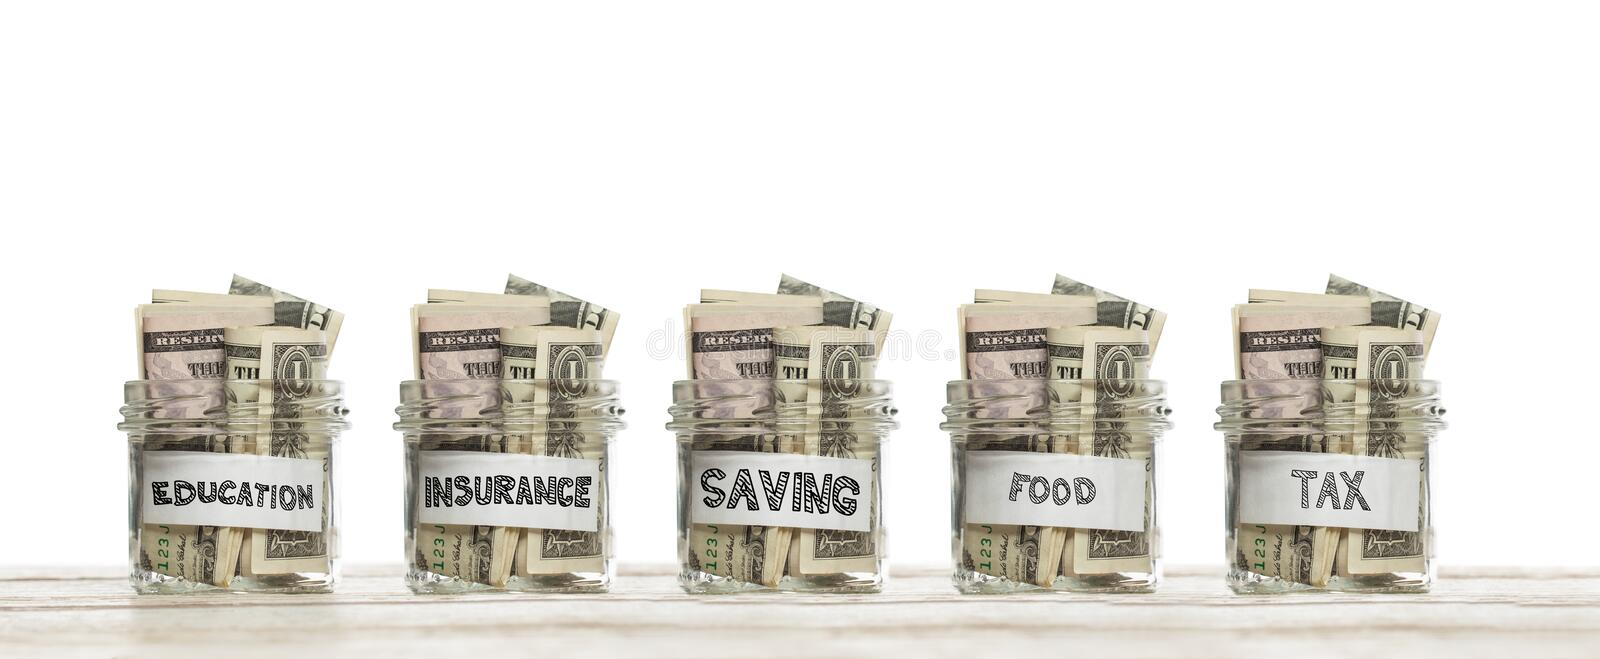 Saving glass jars with us dollars money for education, insurance, food and tax on wooden board against white background.  royalty free stock image